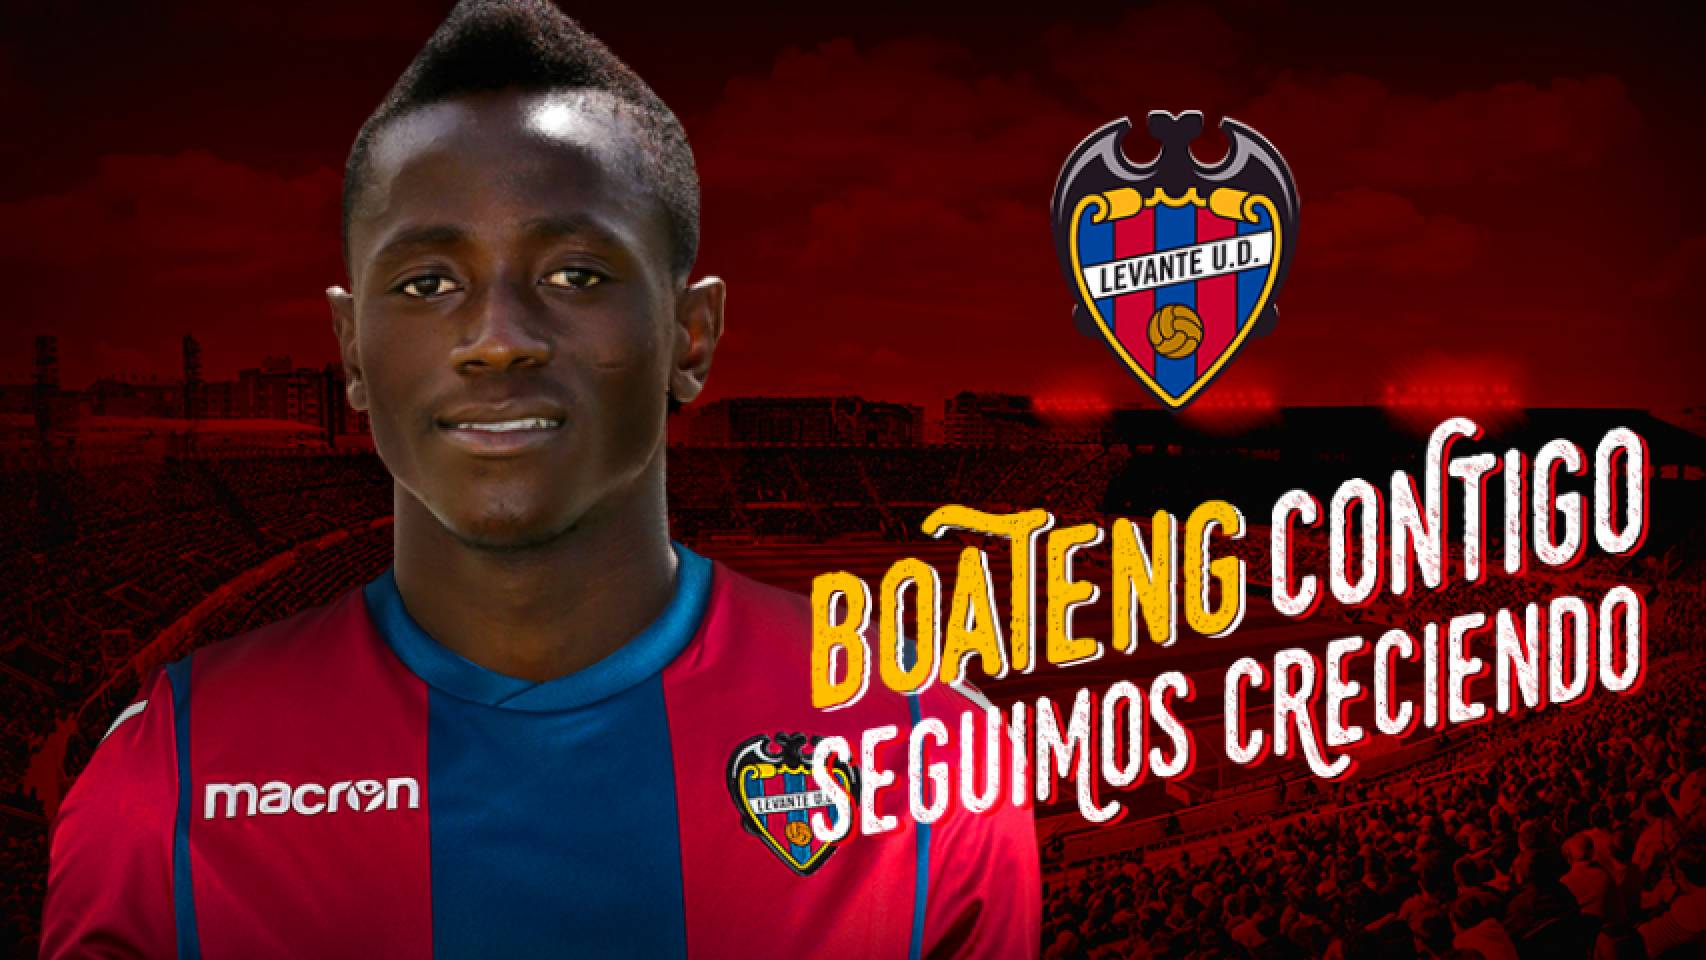 Levante paid 2 million euros to sign talented Ghanaian forward Emmanuel Boateng